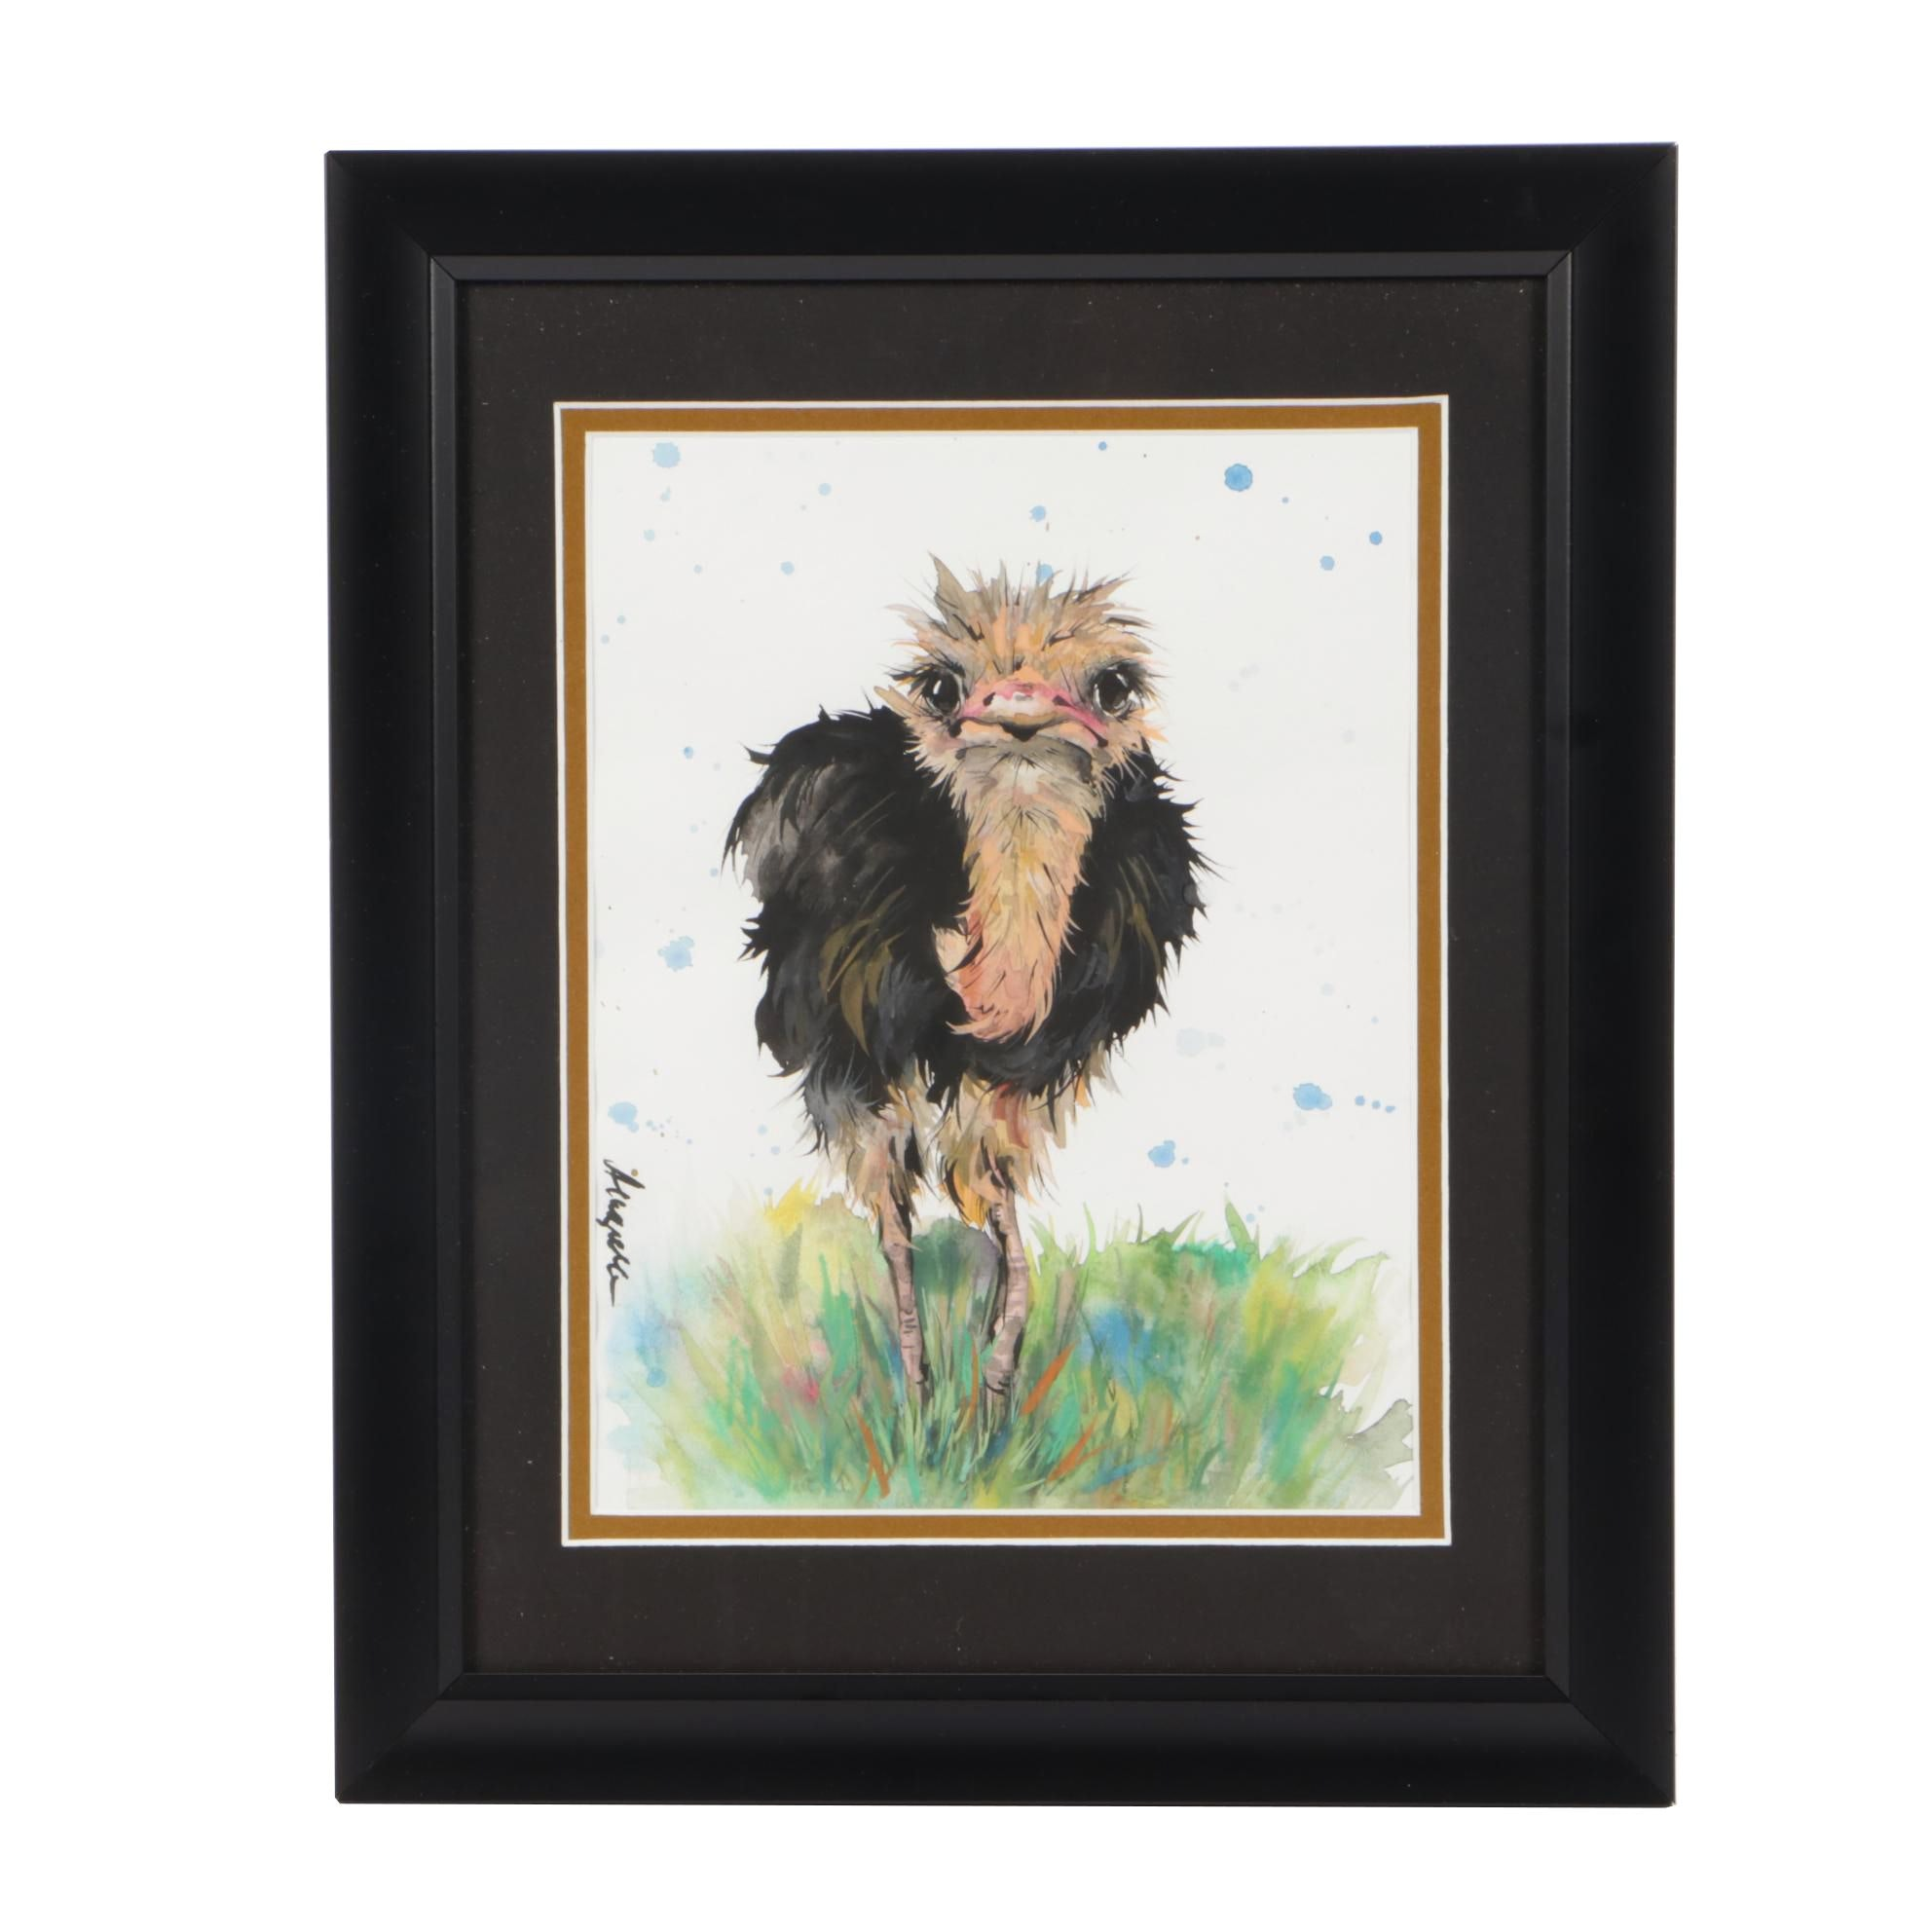 Angor Contemporary Gouache and Watercolor Ostrich Illustration